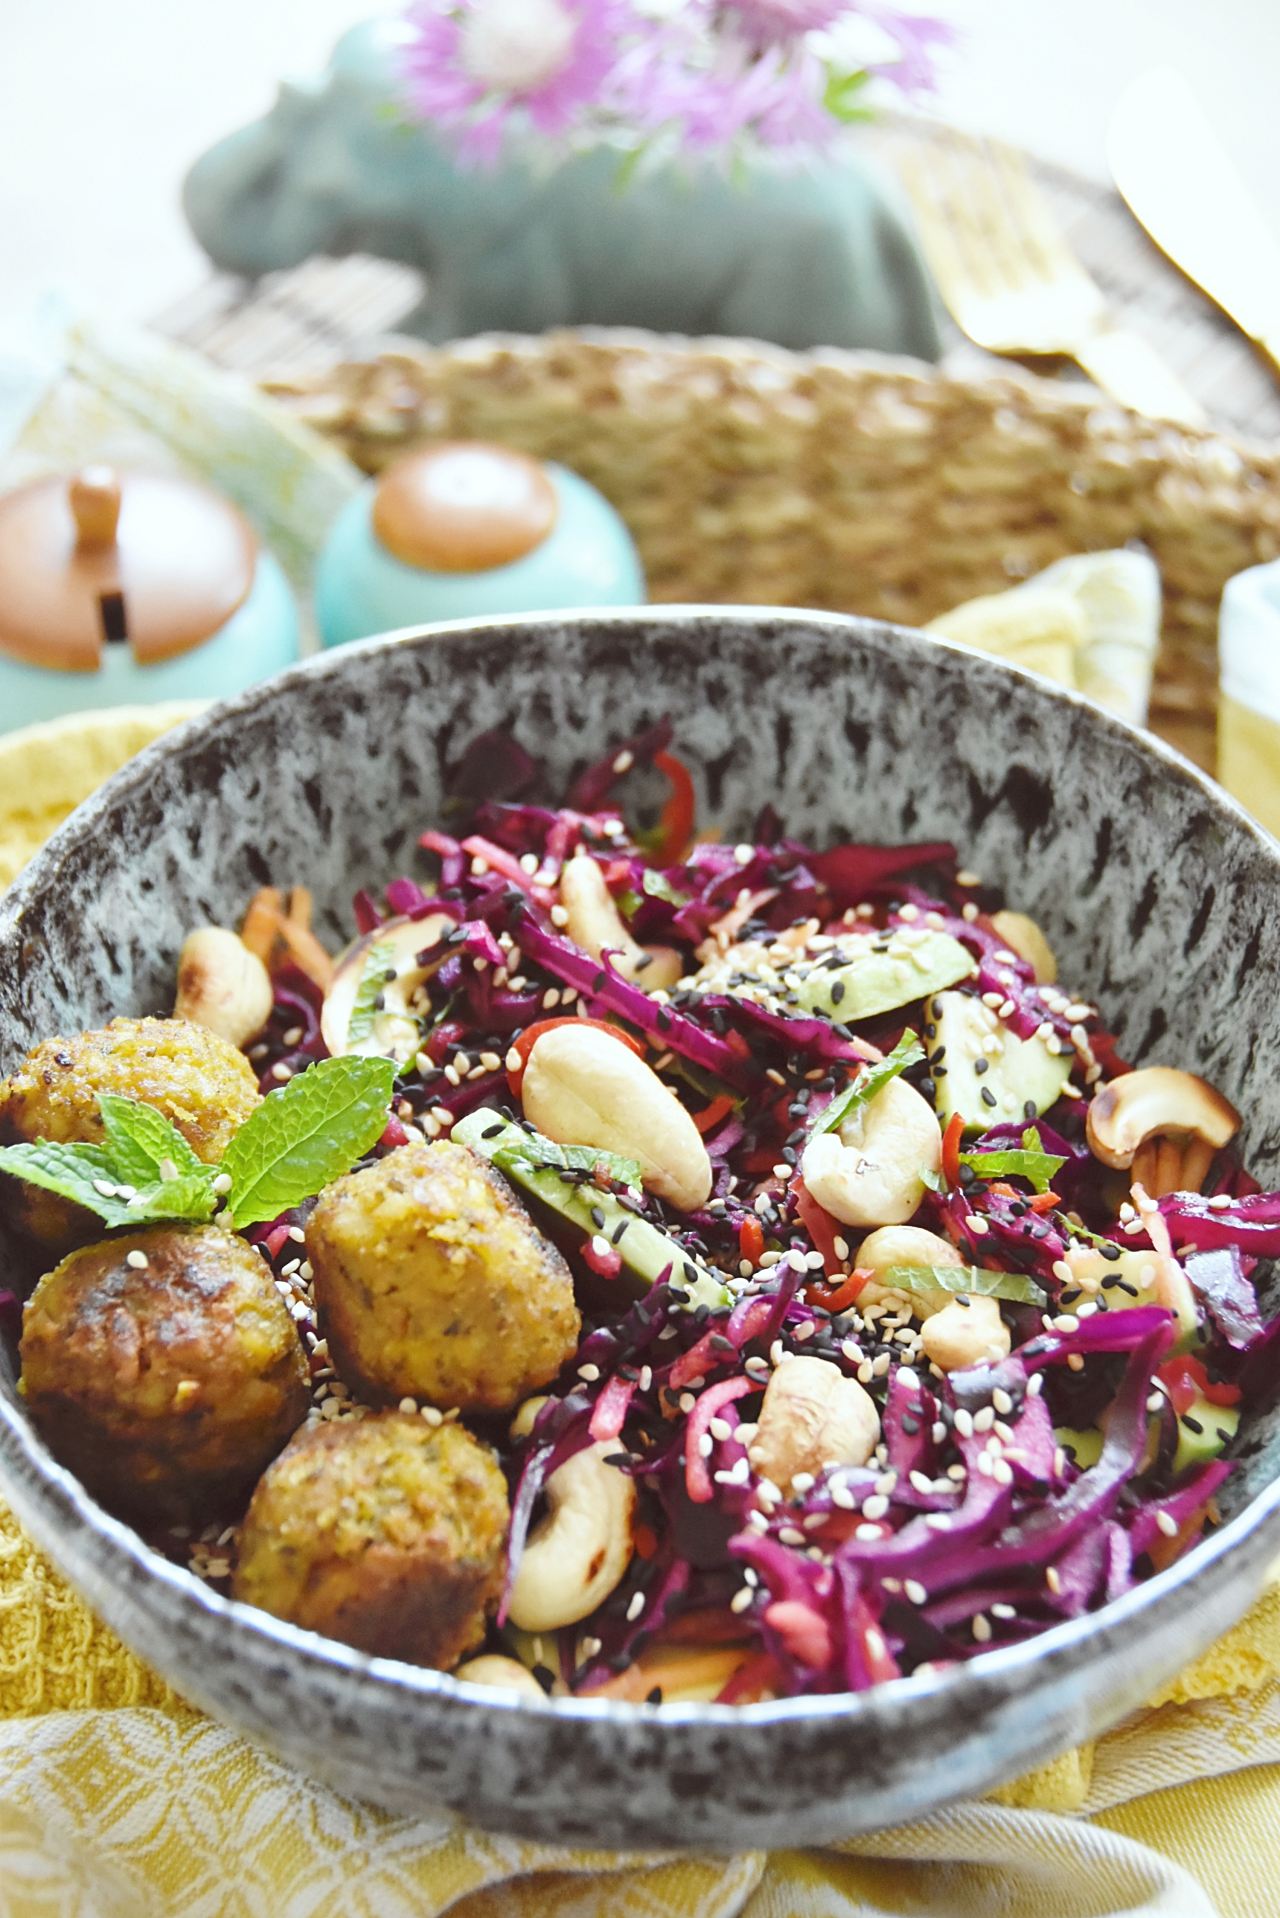 Leckeres Rezept für einen Rotkohlsalat mit Avocado, Cashewkernen & Sesam | Sommersalat mit Rotkohl | Recipe for Red Cabbage Salad with Avocado, Cashews & Sesame | luziapimpinella.com